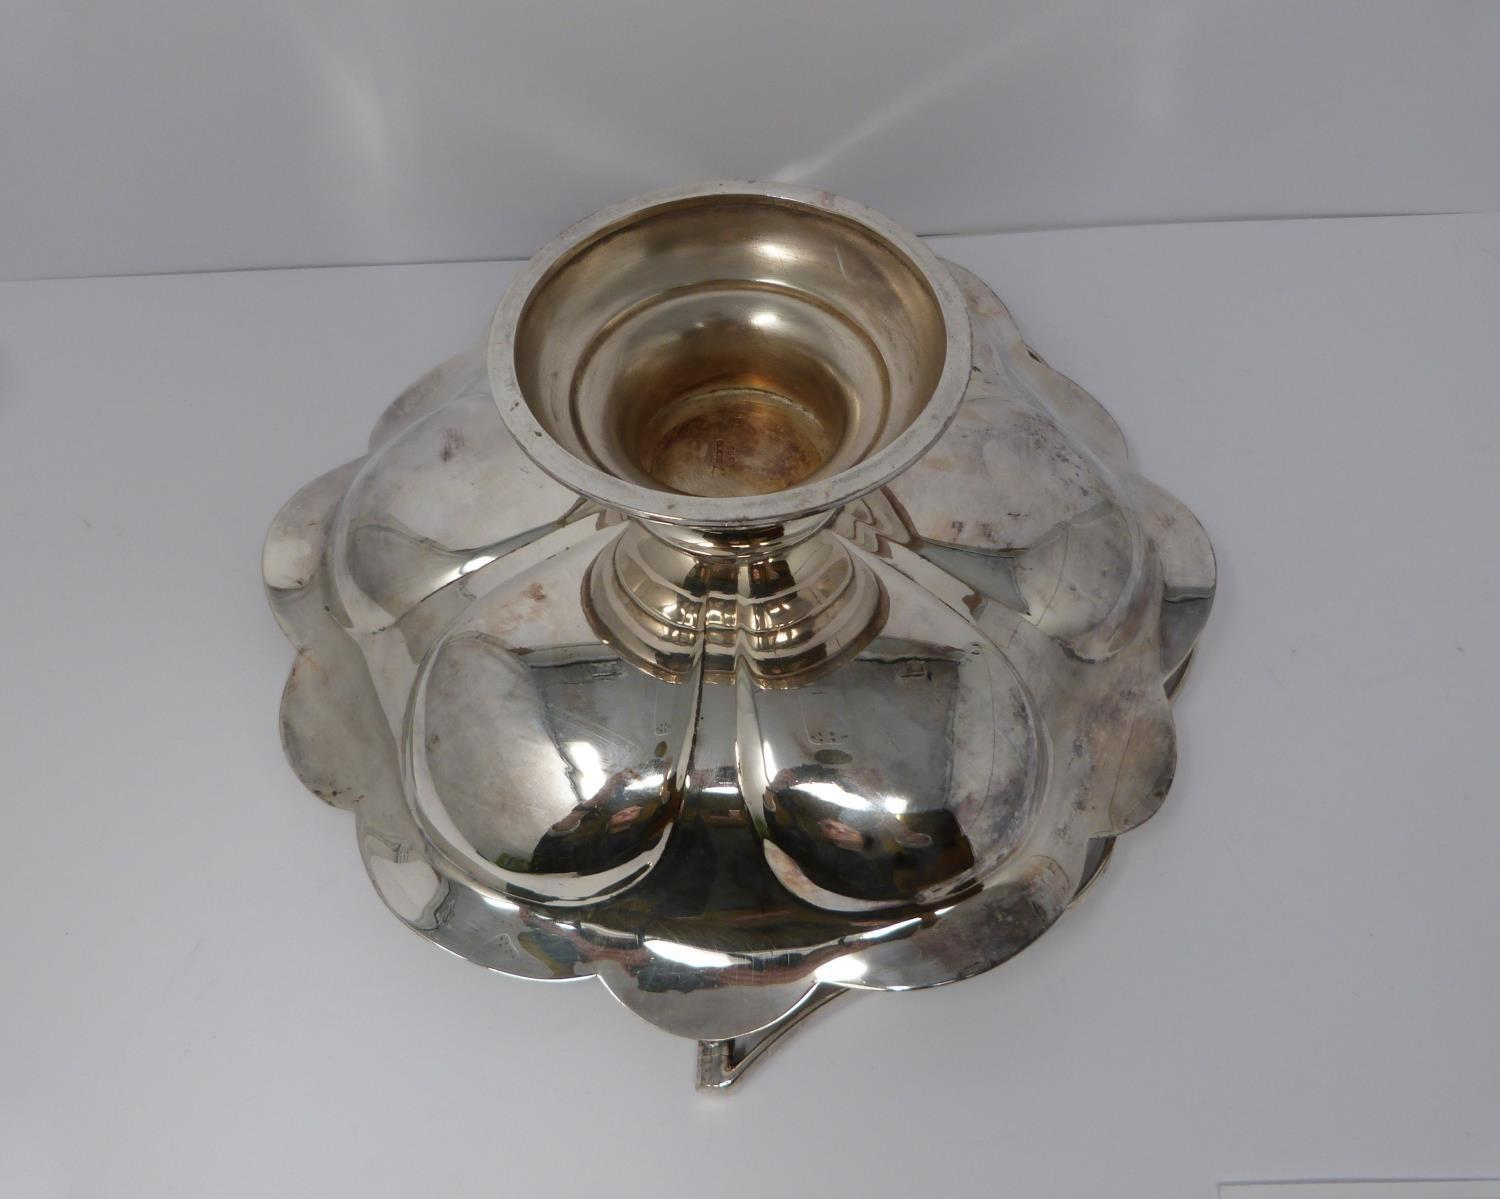 A silver plated cake stand, handled basket and two tankards, basket stamped EPNS, 13694, flower form - Image 4 of 12